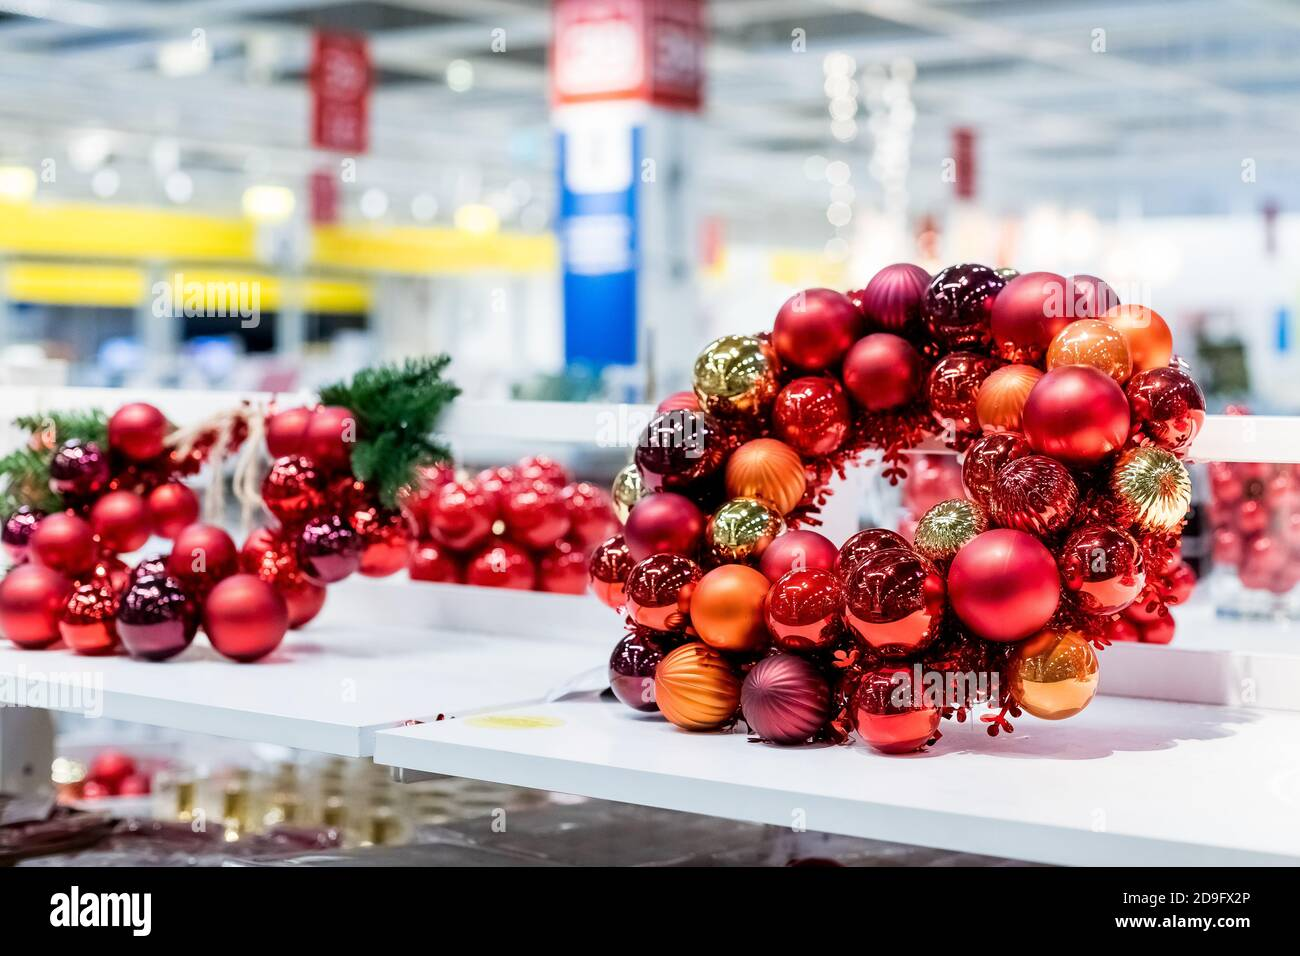 Christmas Supermarket High Resolution Stock Photography And Images Alamy